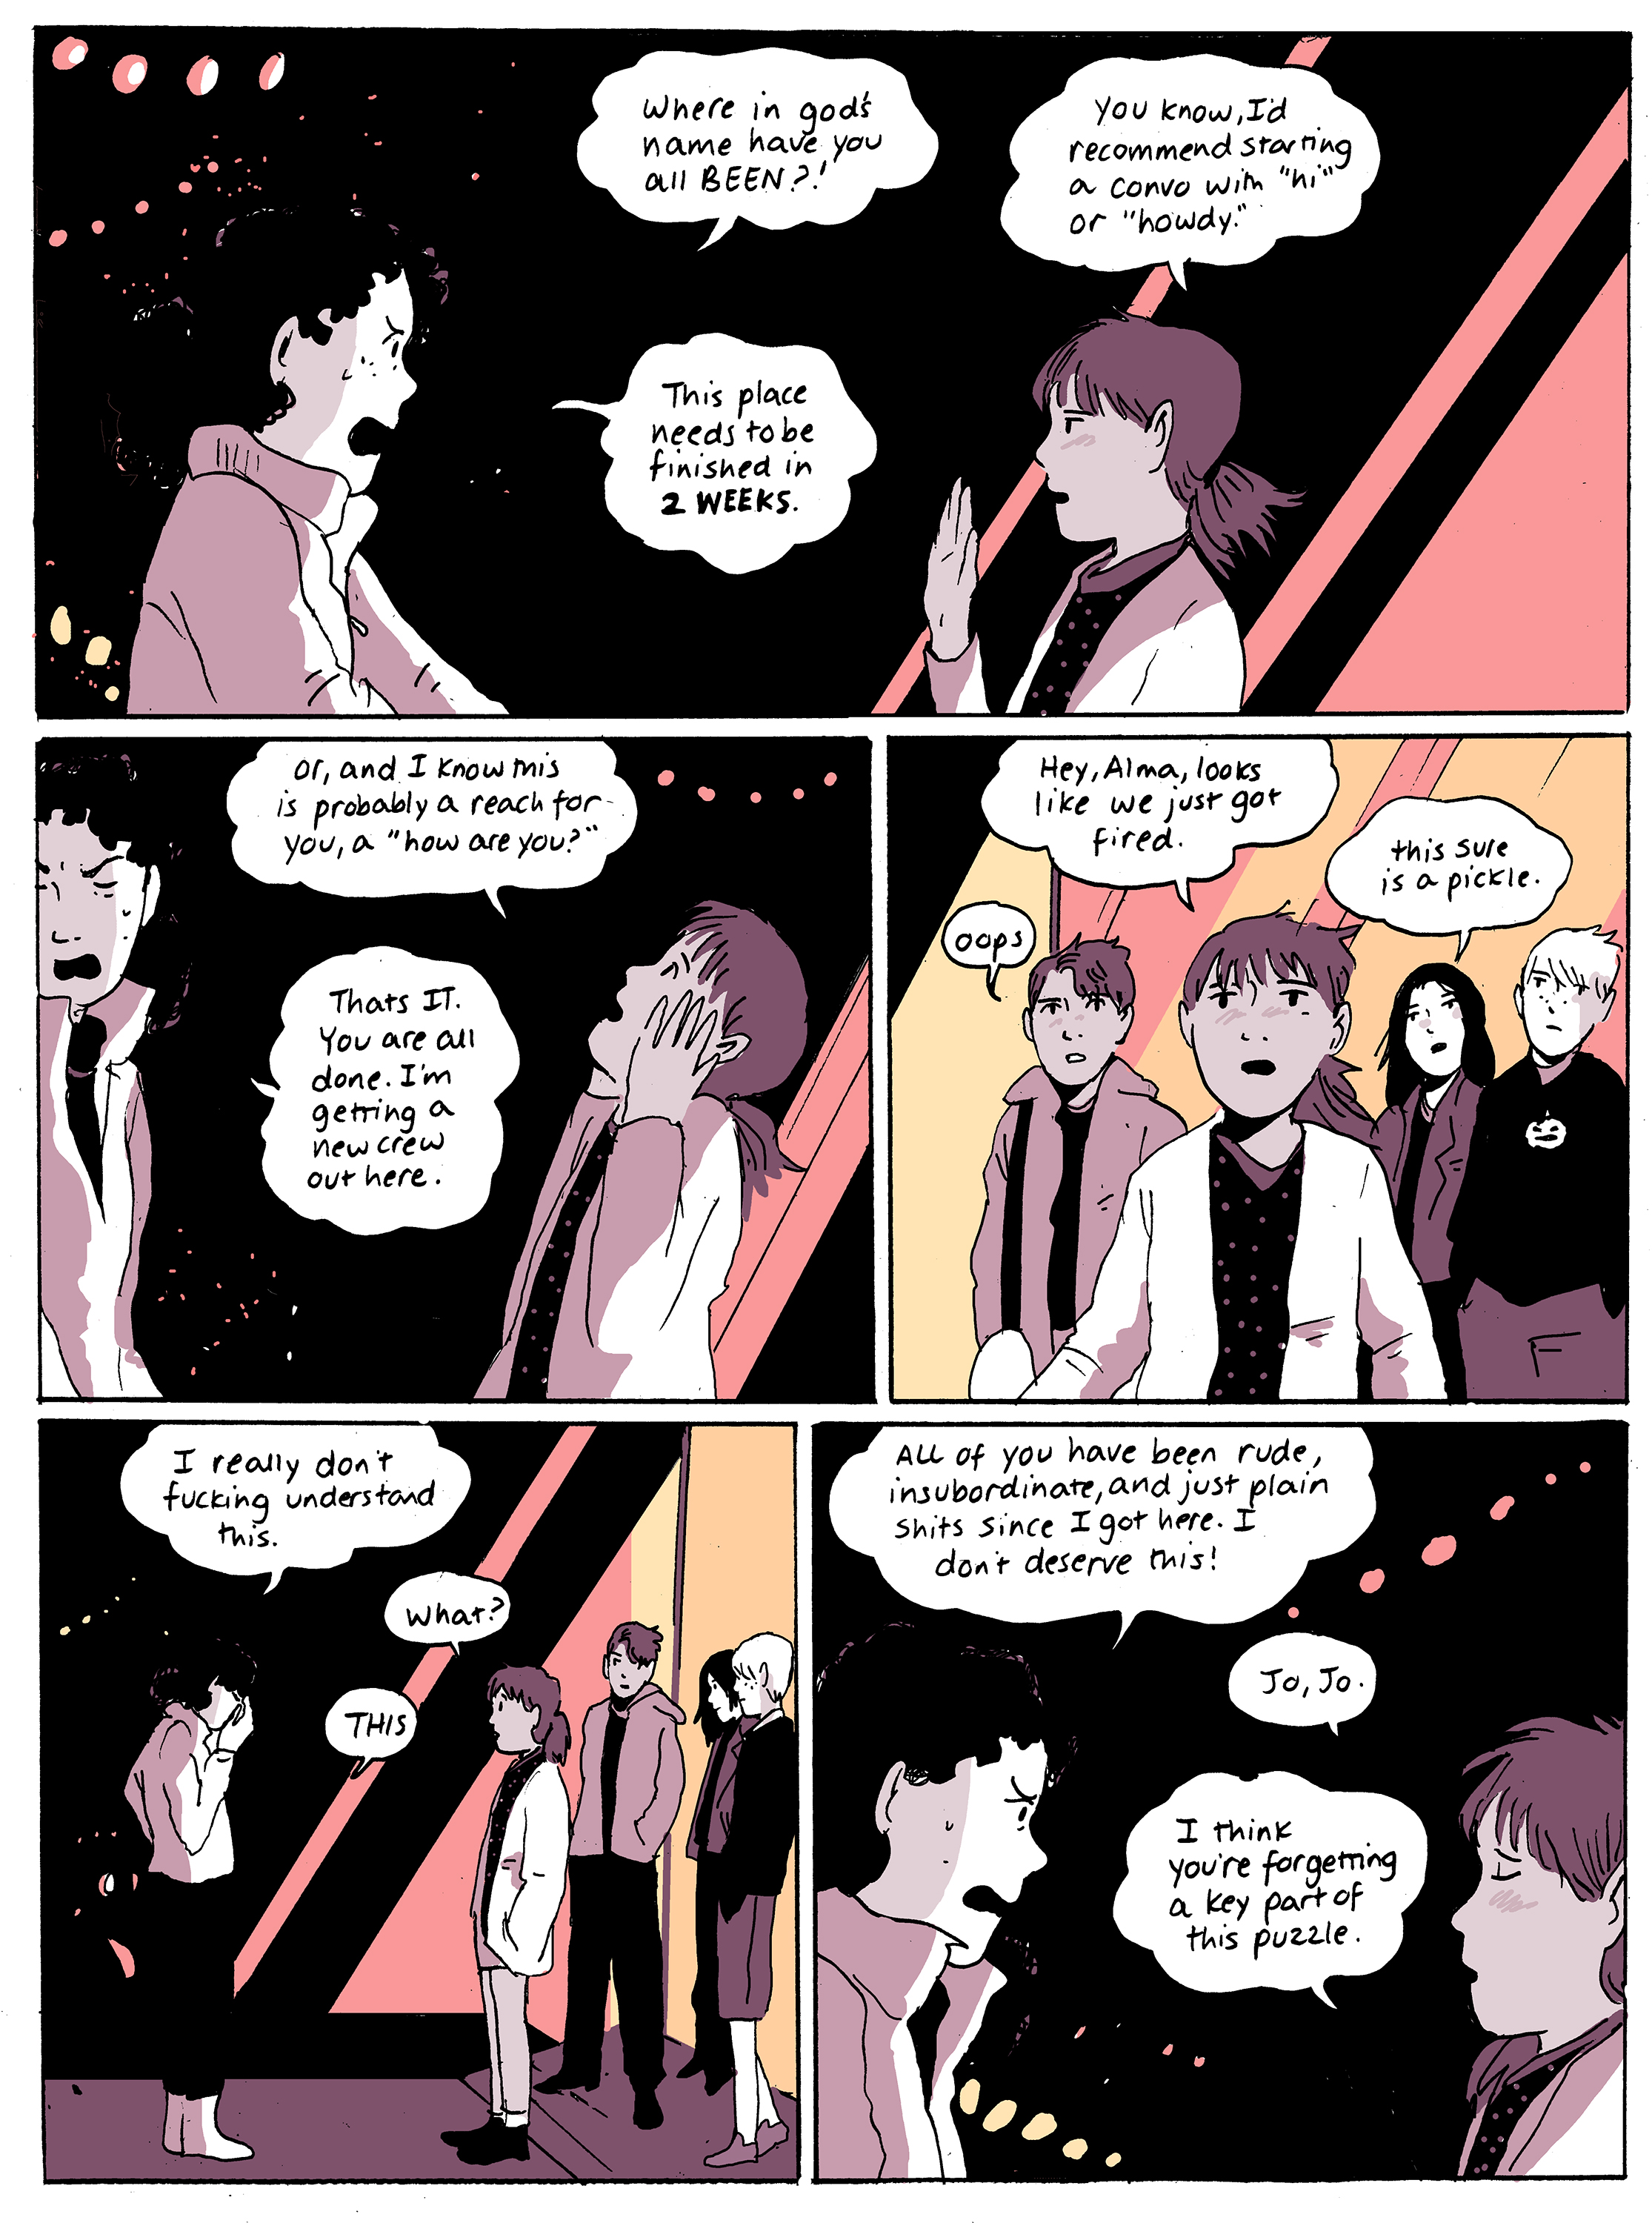 chapter13_page09.jpg